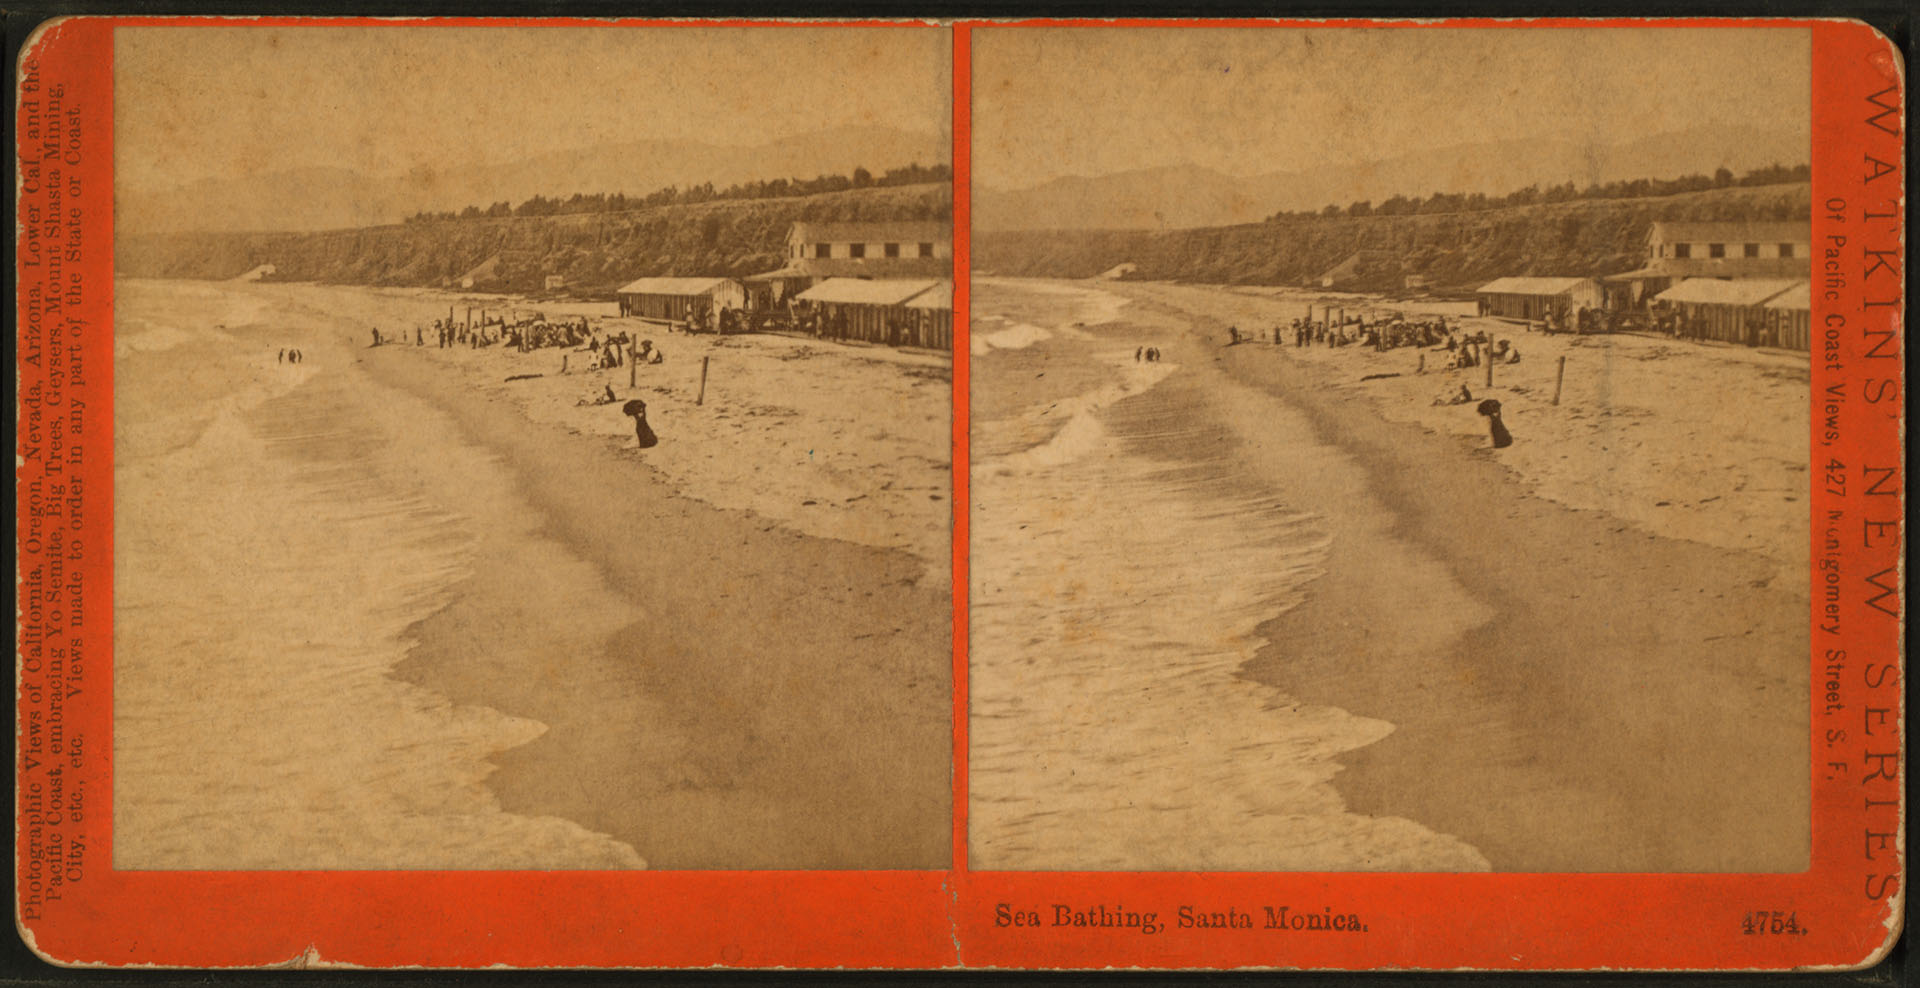 Sea Bathing, Santa Monica, Cal.